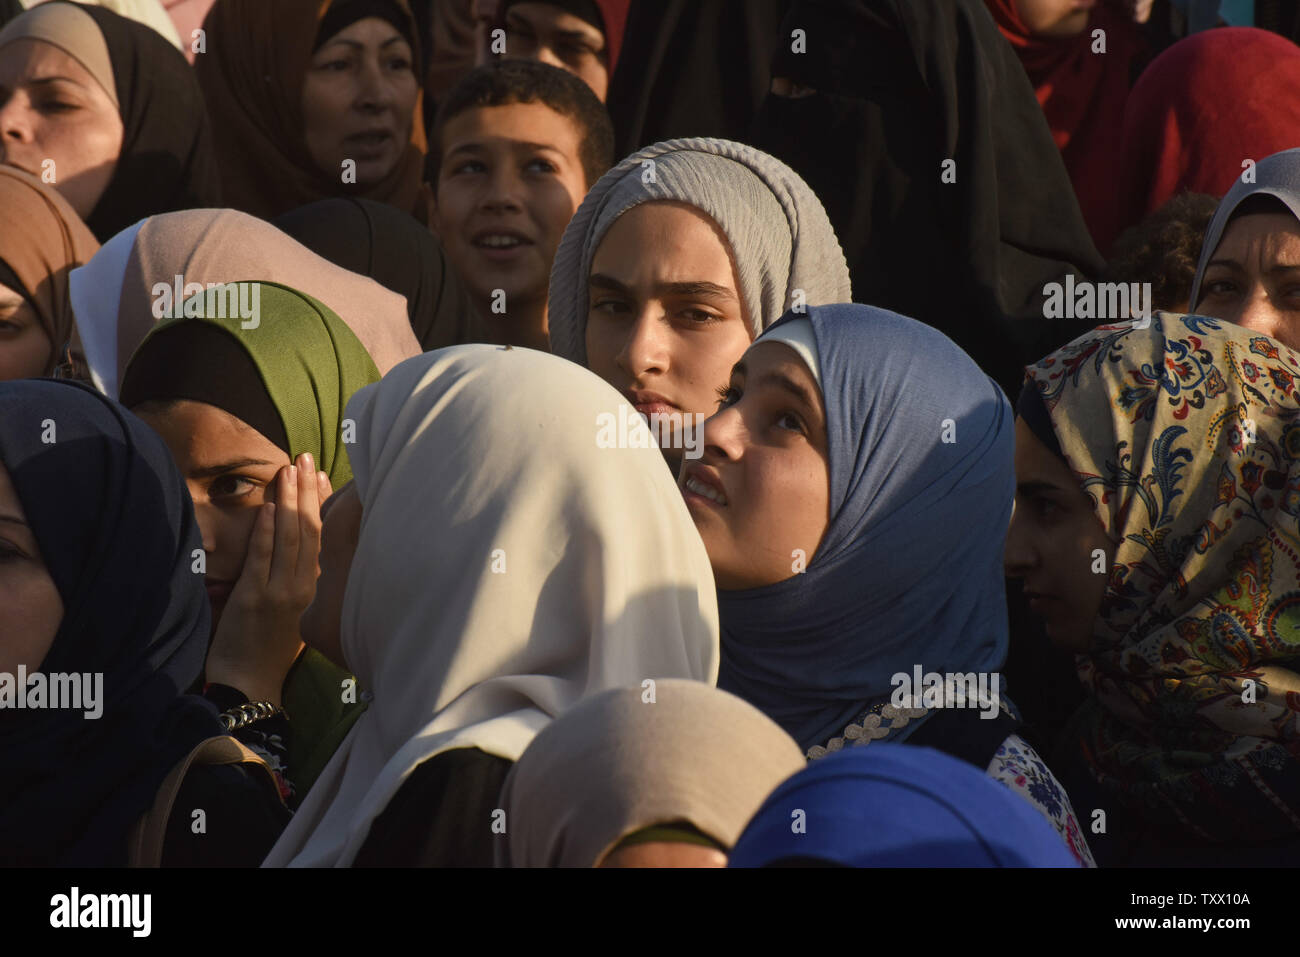 Palestinians wait in line to pass Israeli security forces before crossing the Qalandiya checkpoint, West Bank, from Ramallah to Jerusalem, to pray at the Al-Aqsa Mosque on the last Friday of the Muslim holy month of Ramadan, June 8, 2018.  Photo by Debbie Hill/UPI - Stock Image